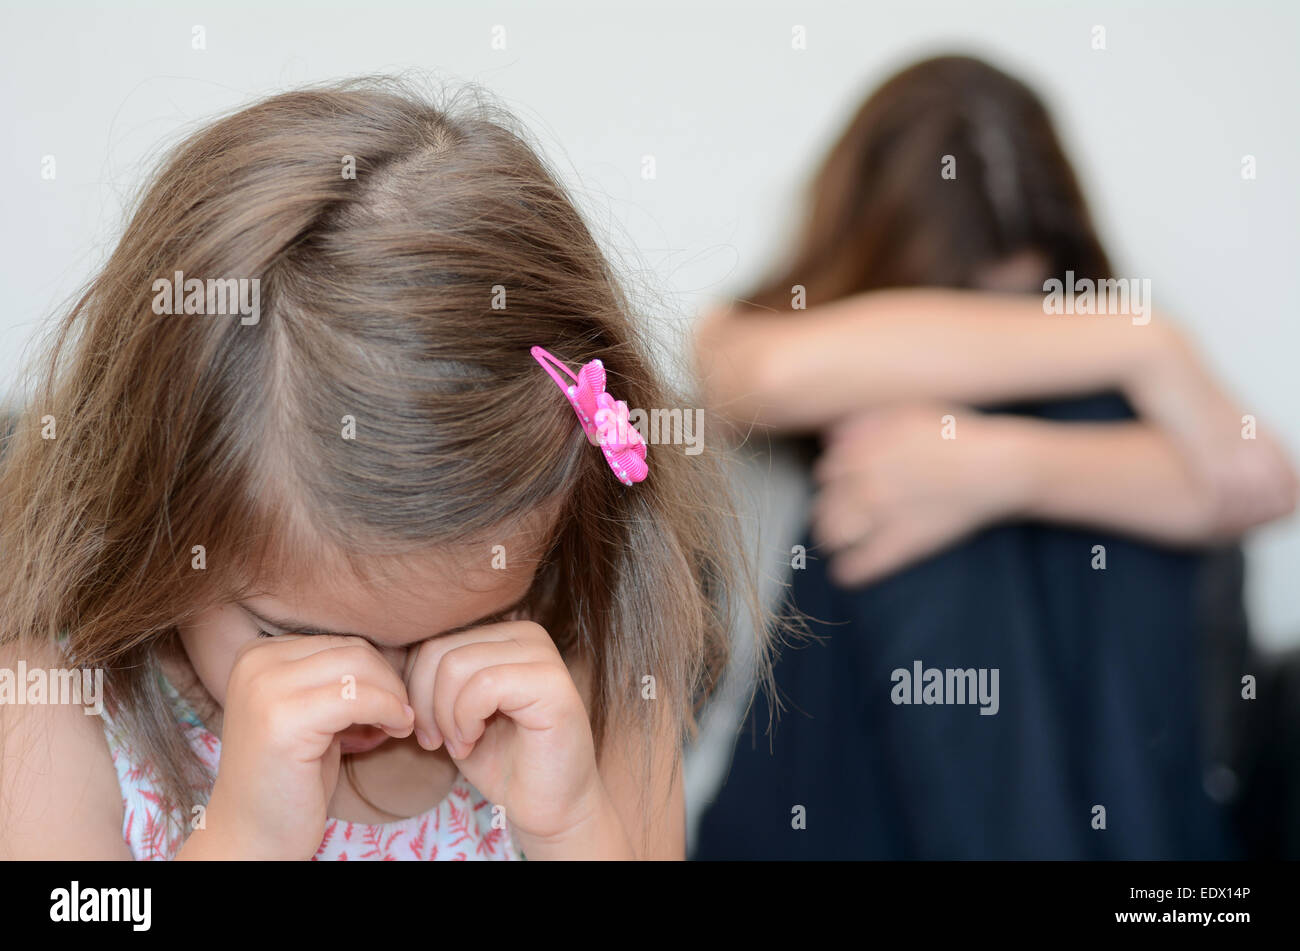 Little girl (age 05) cring with her desperate mother in background - Stock Image